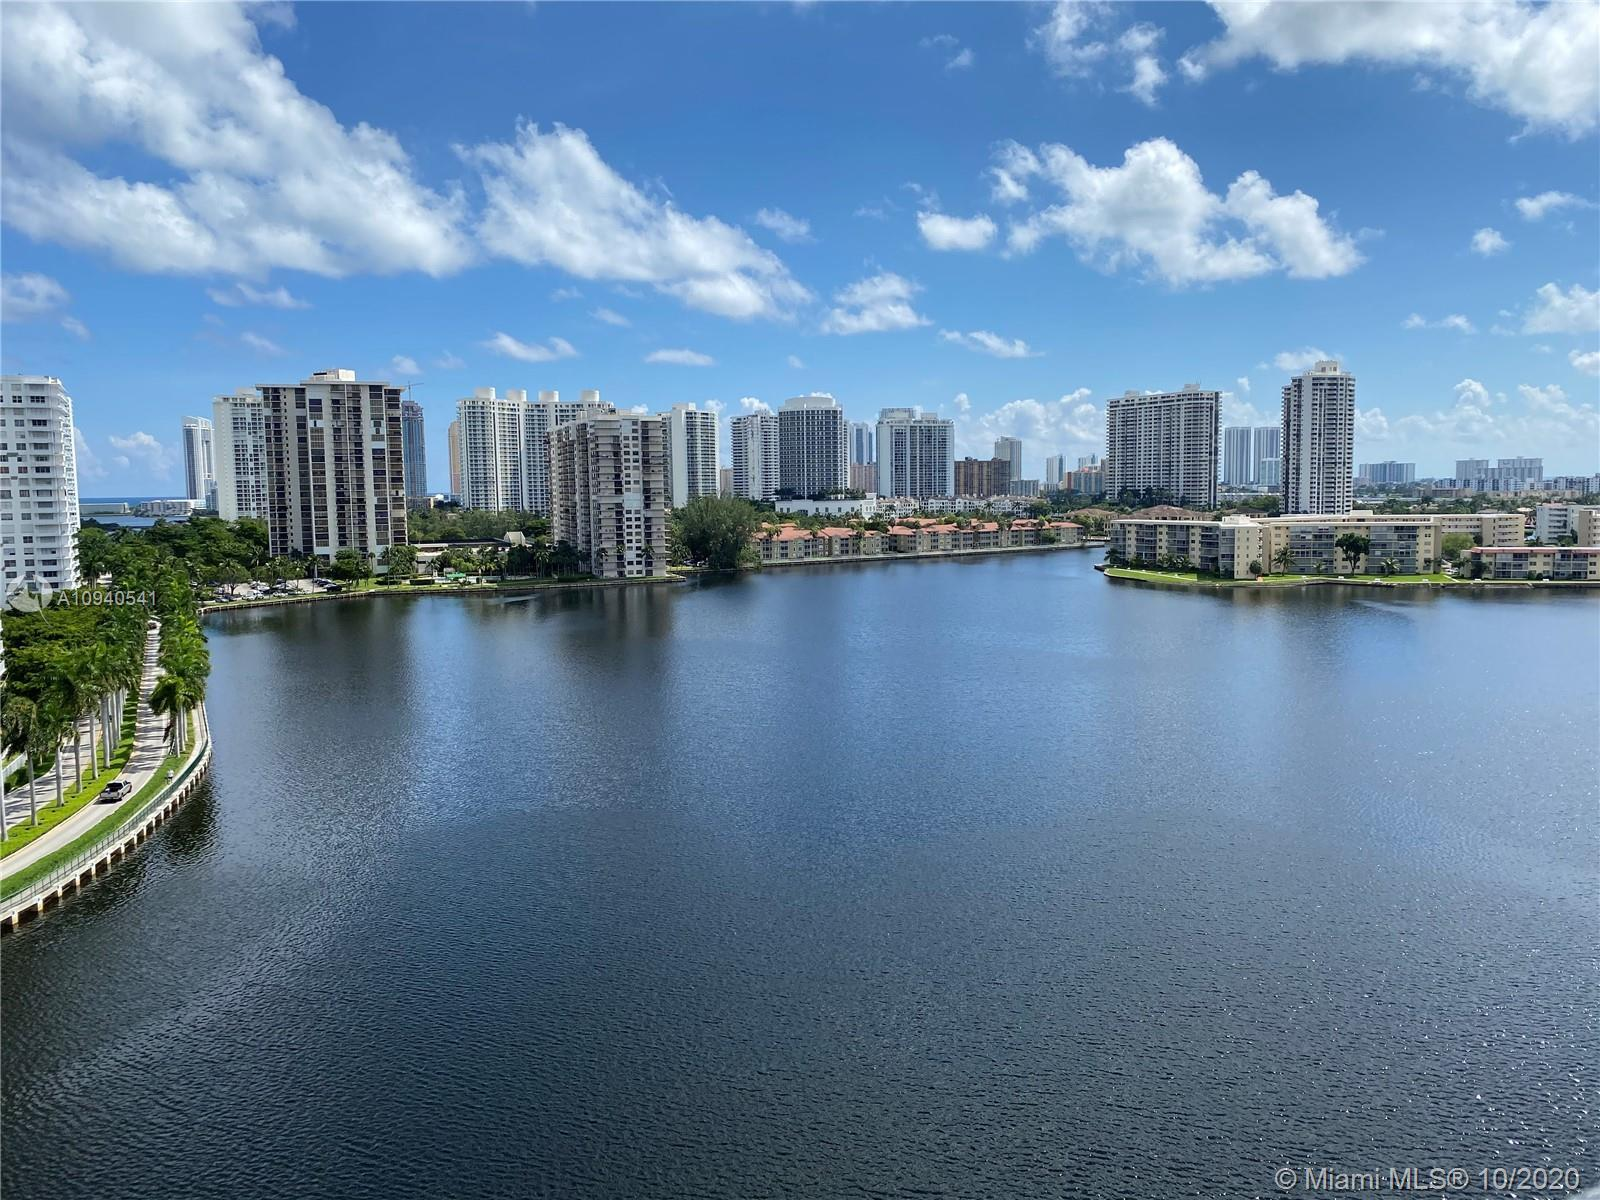 WATER! WATER! ABSOLUTELY LOVELY CORNER UNIT AT COMMODORE PLAZA IN AVENTURA WITH BREATHTAKING WATER V